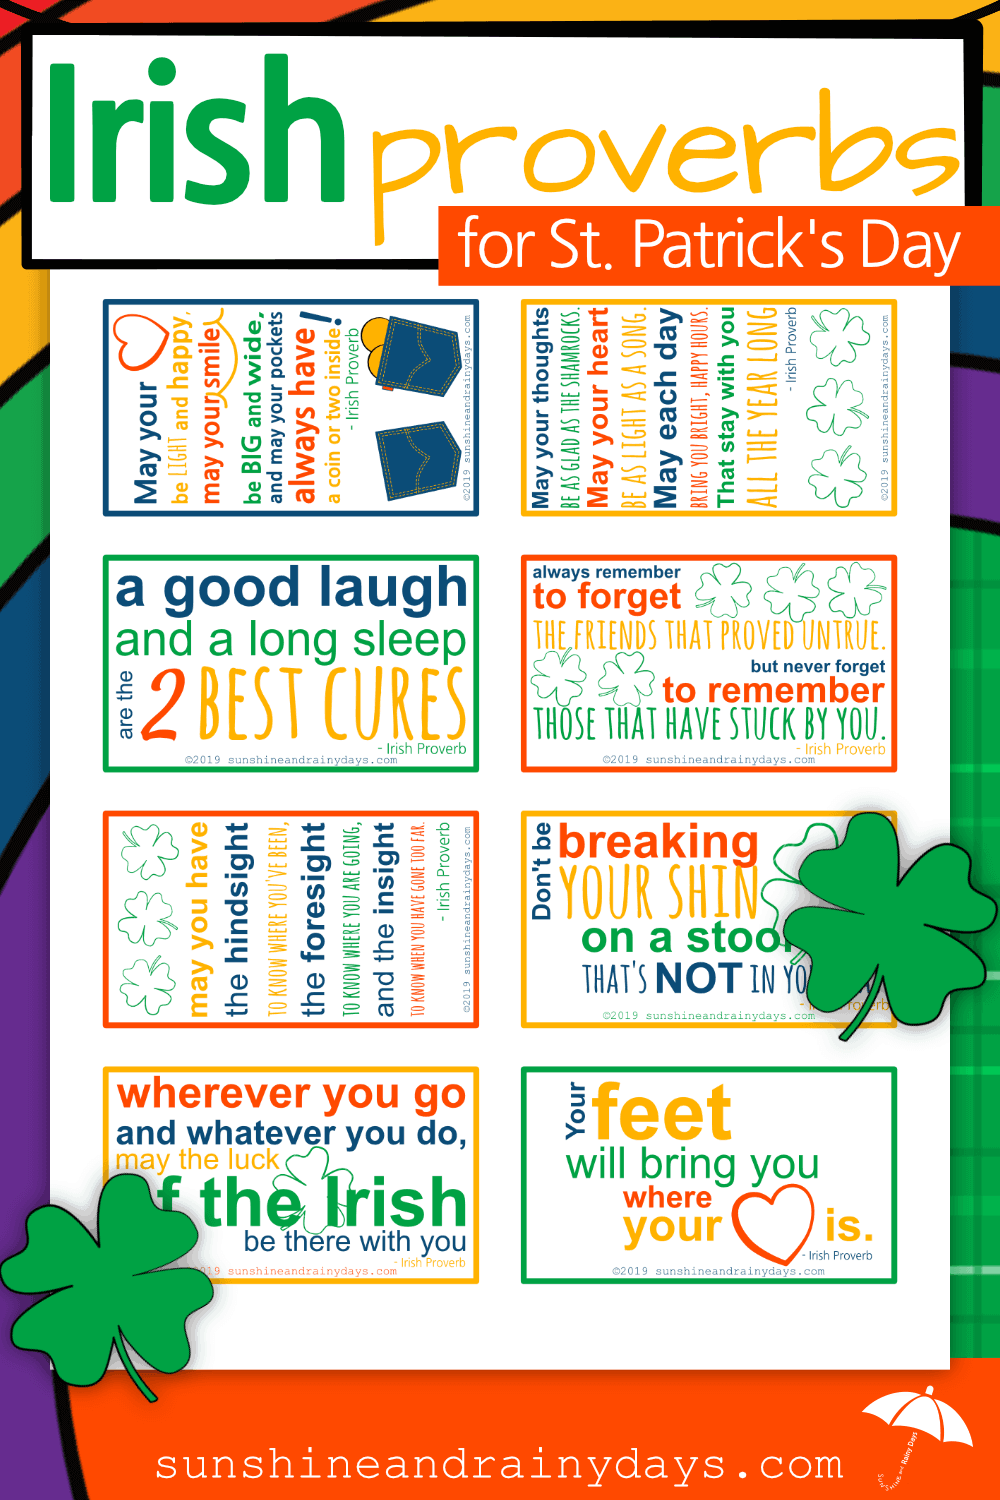 St. Patrick's Day is a day to celebrate all things Irish! This Irish Proverbs Printable will help you do just that! The Irish Proverbs PDF has eight, business card size, Irish Proverbs to tuck in your wallet and share with friends! Irish Proverb | St. Patrick's Day | Printables | #StPatricksDay #IrishProverbs #SARD